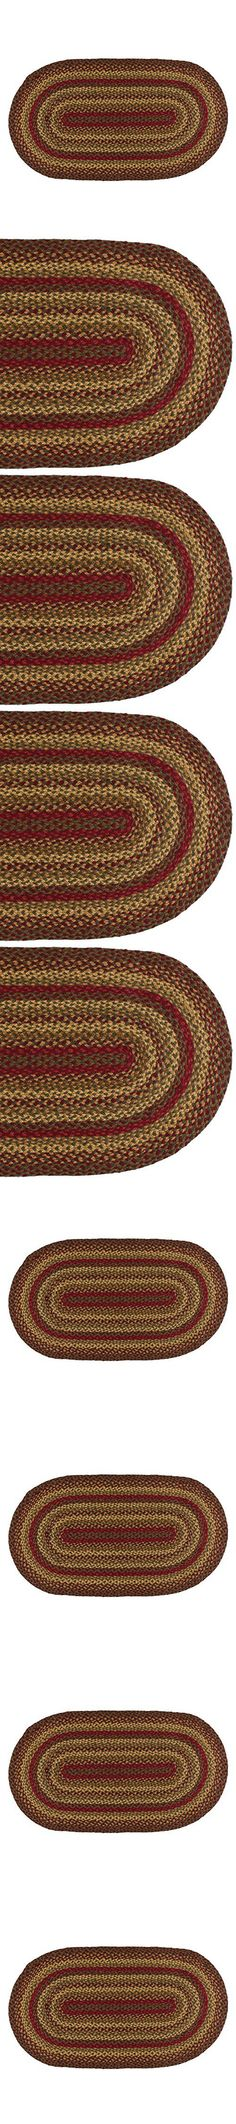 ihf home decor country style oval area floor carpet 20 x 30 braided rug